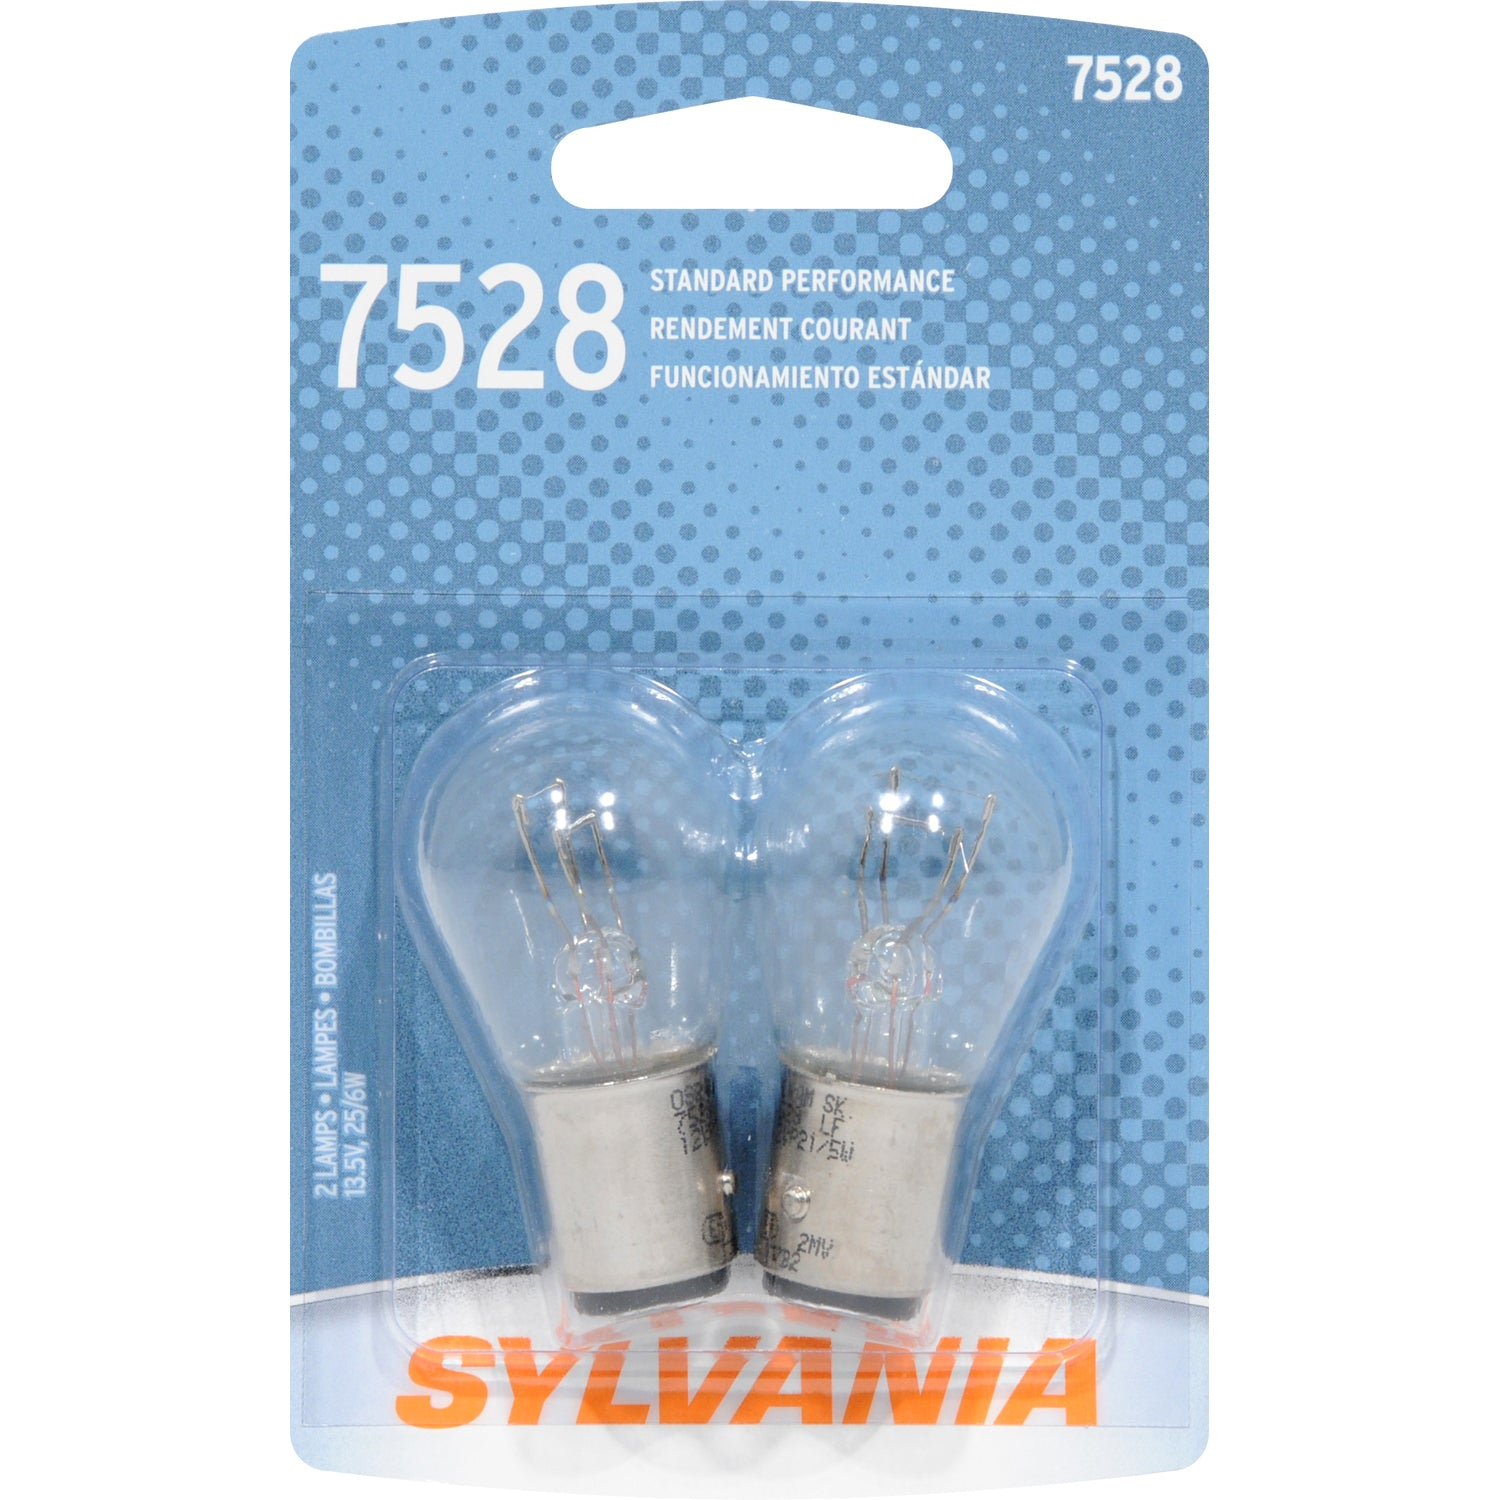 2-PK SYLVANIA 7528 P21/5W Basic Automotive Light Bulb